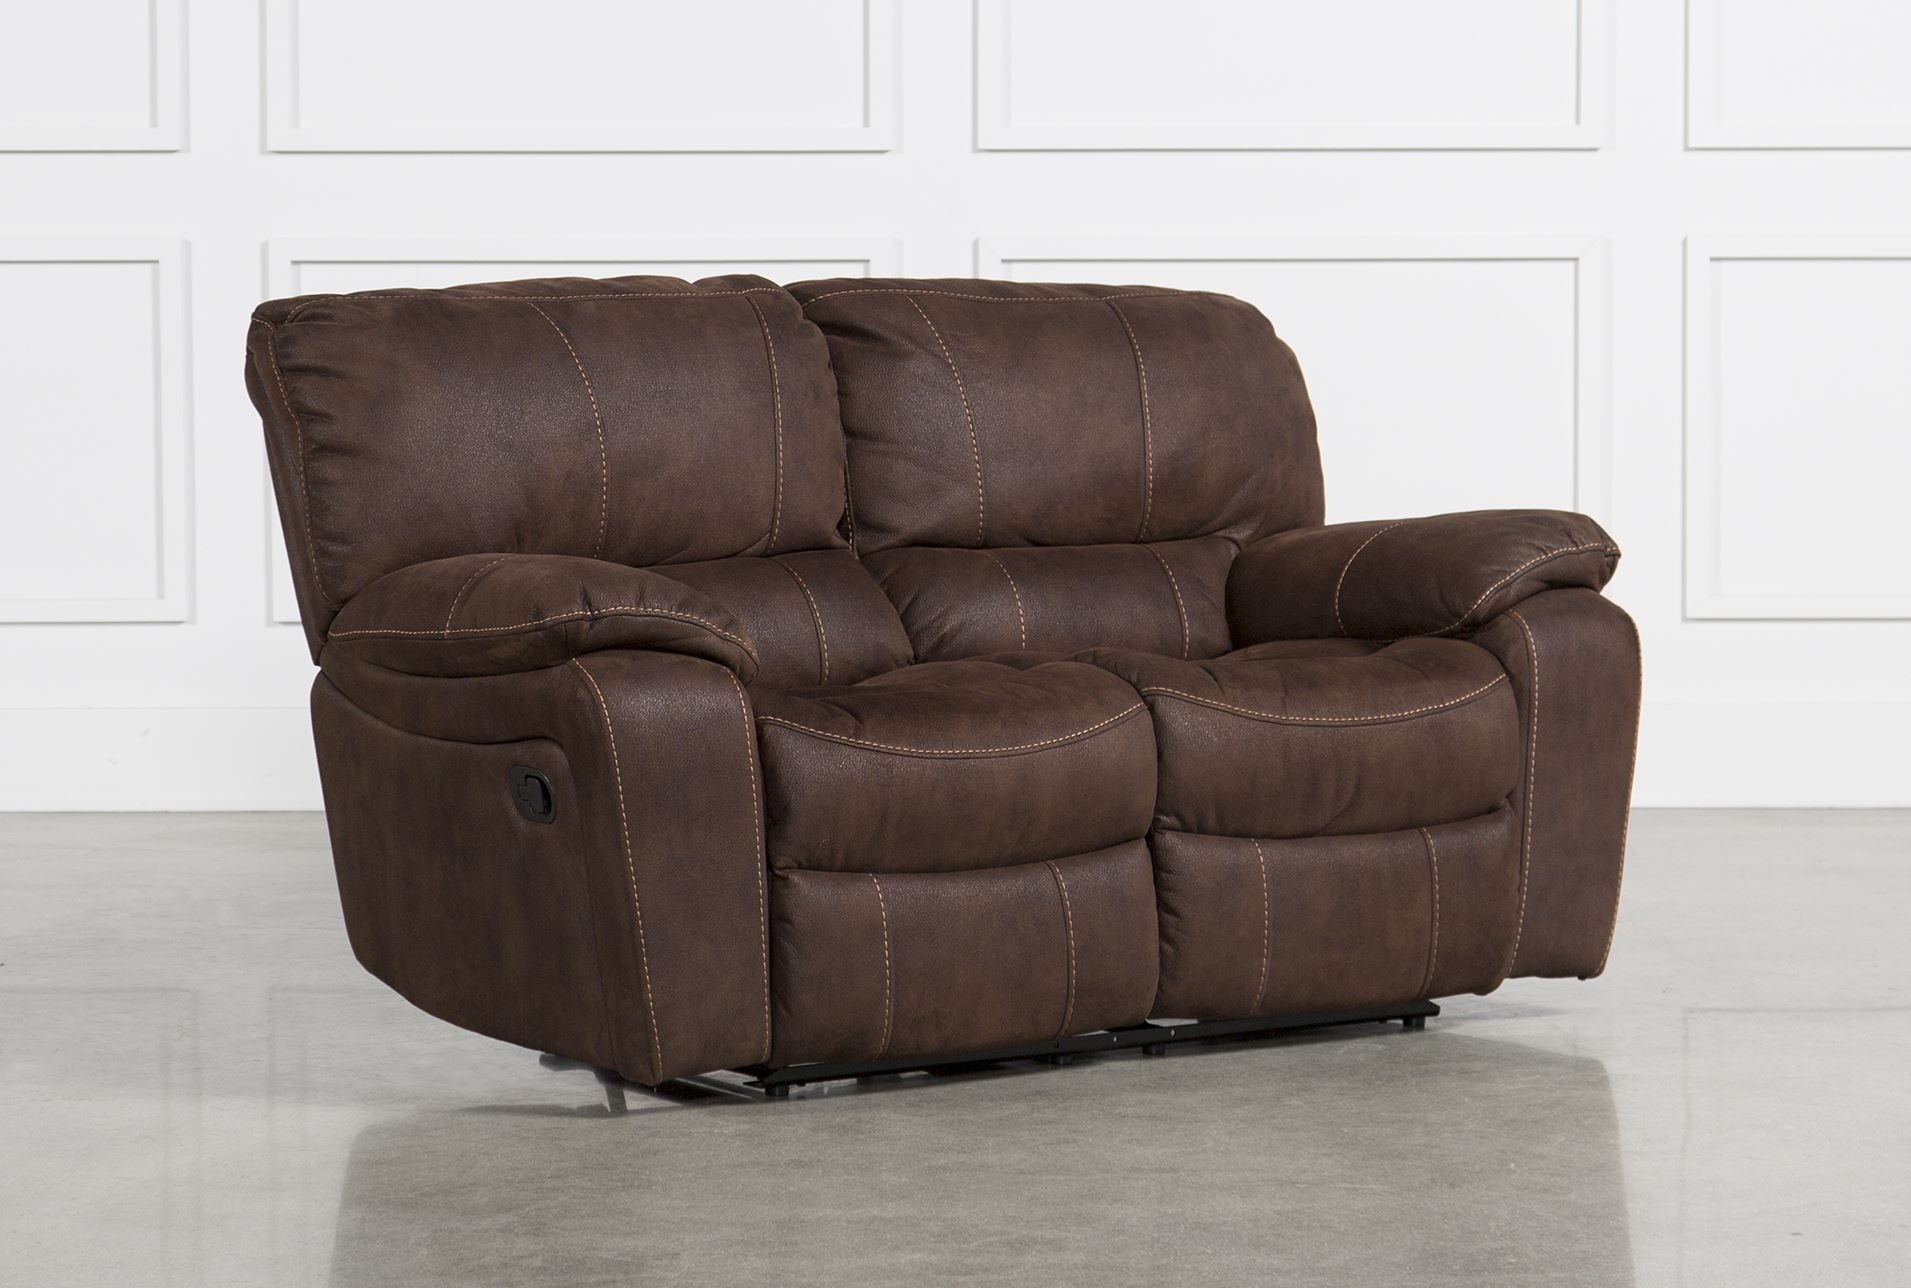 Langdon Reclining Loveseat - Signature | Sofas/loveseat | Pinterest intended for Tenny Cognac 2 Piece Left Facing Chaise Sectionals With 2 Headrest (Image 13 of 30)